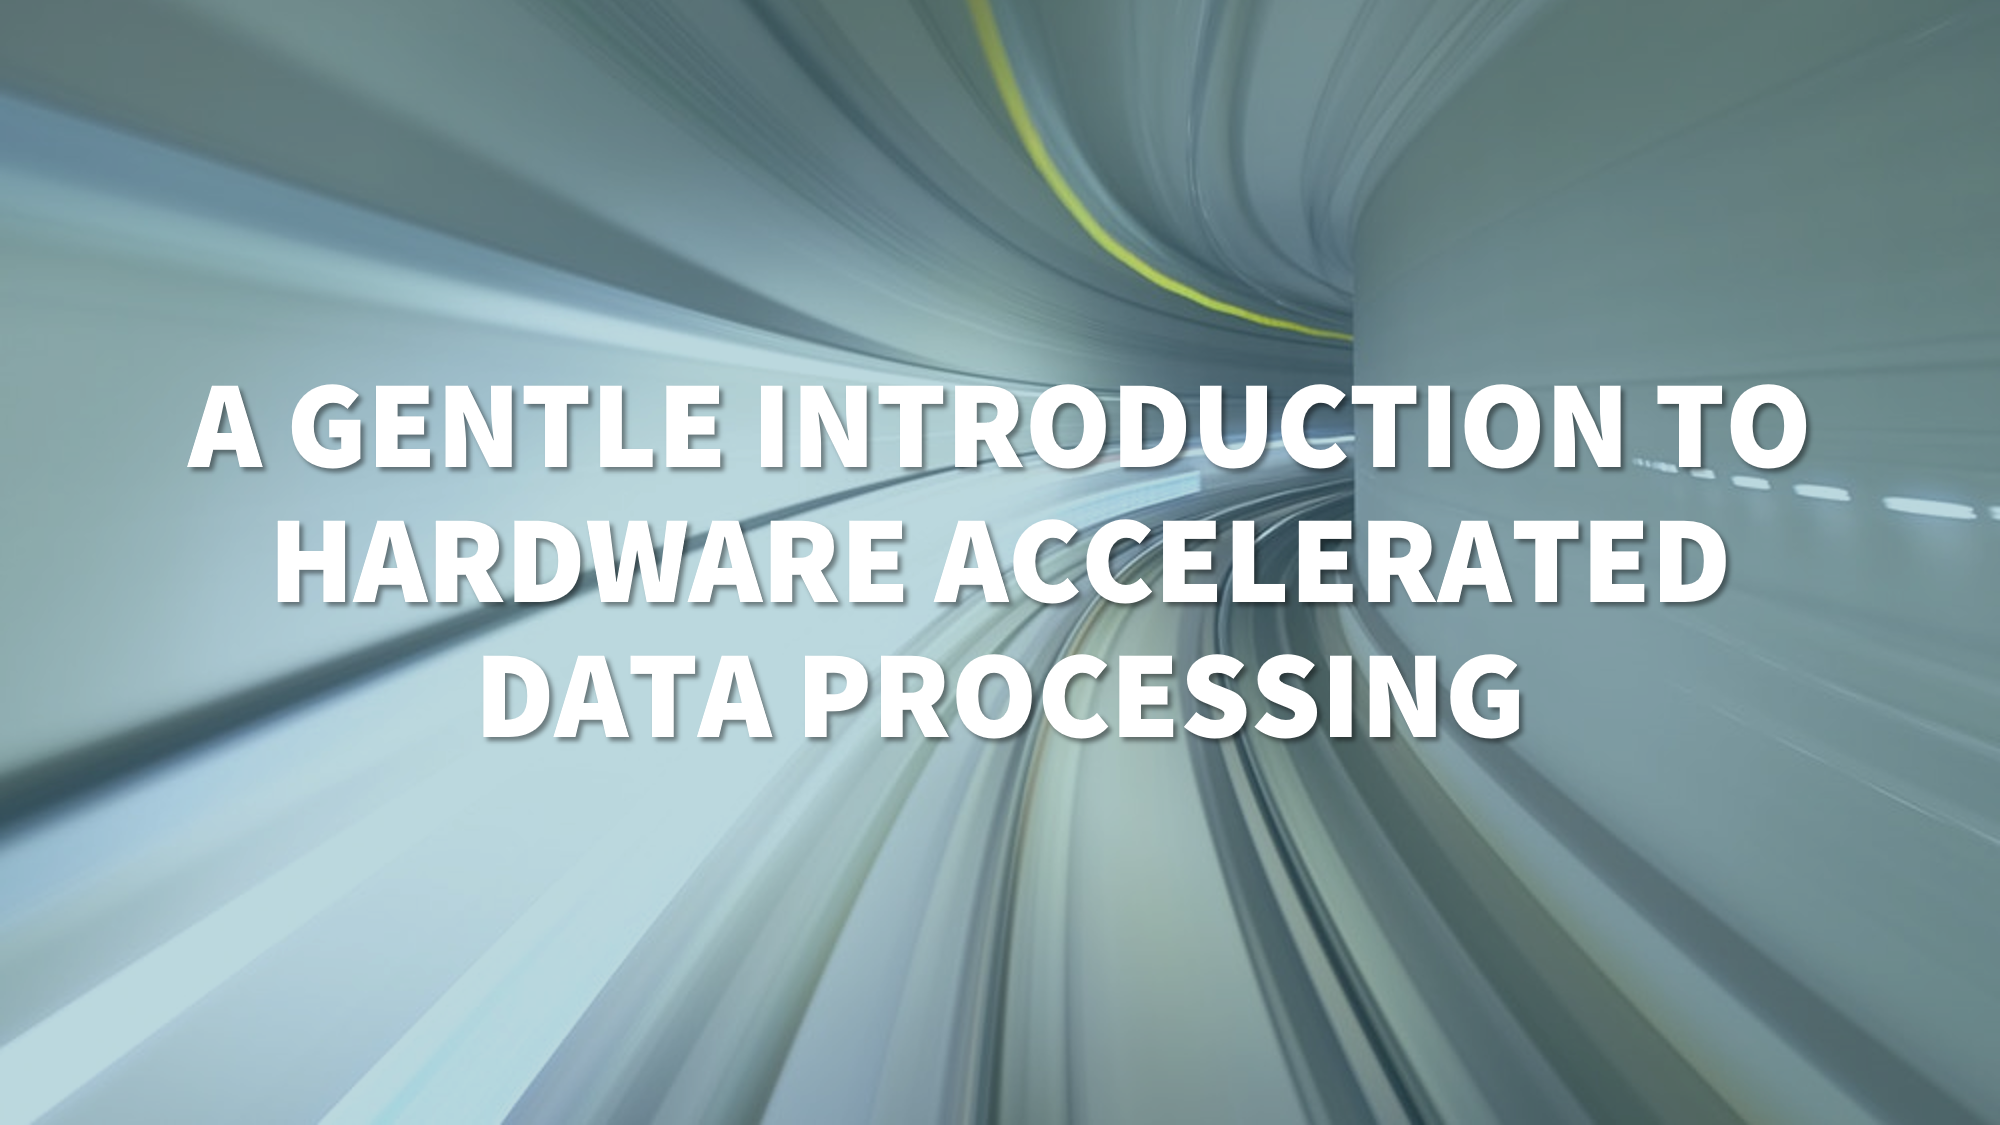 A gentle introduction to hardware accelerated data processing - By